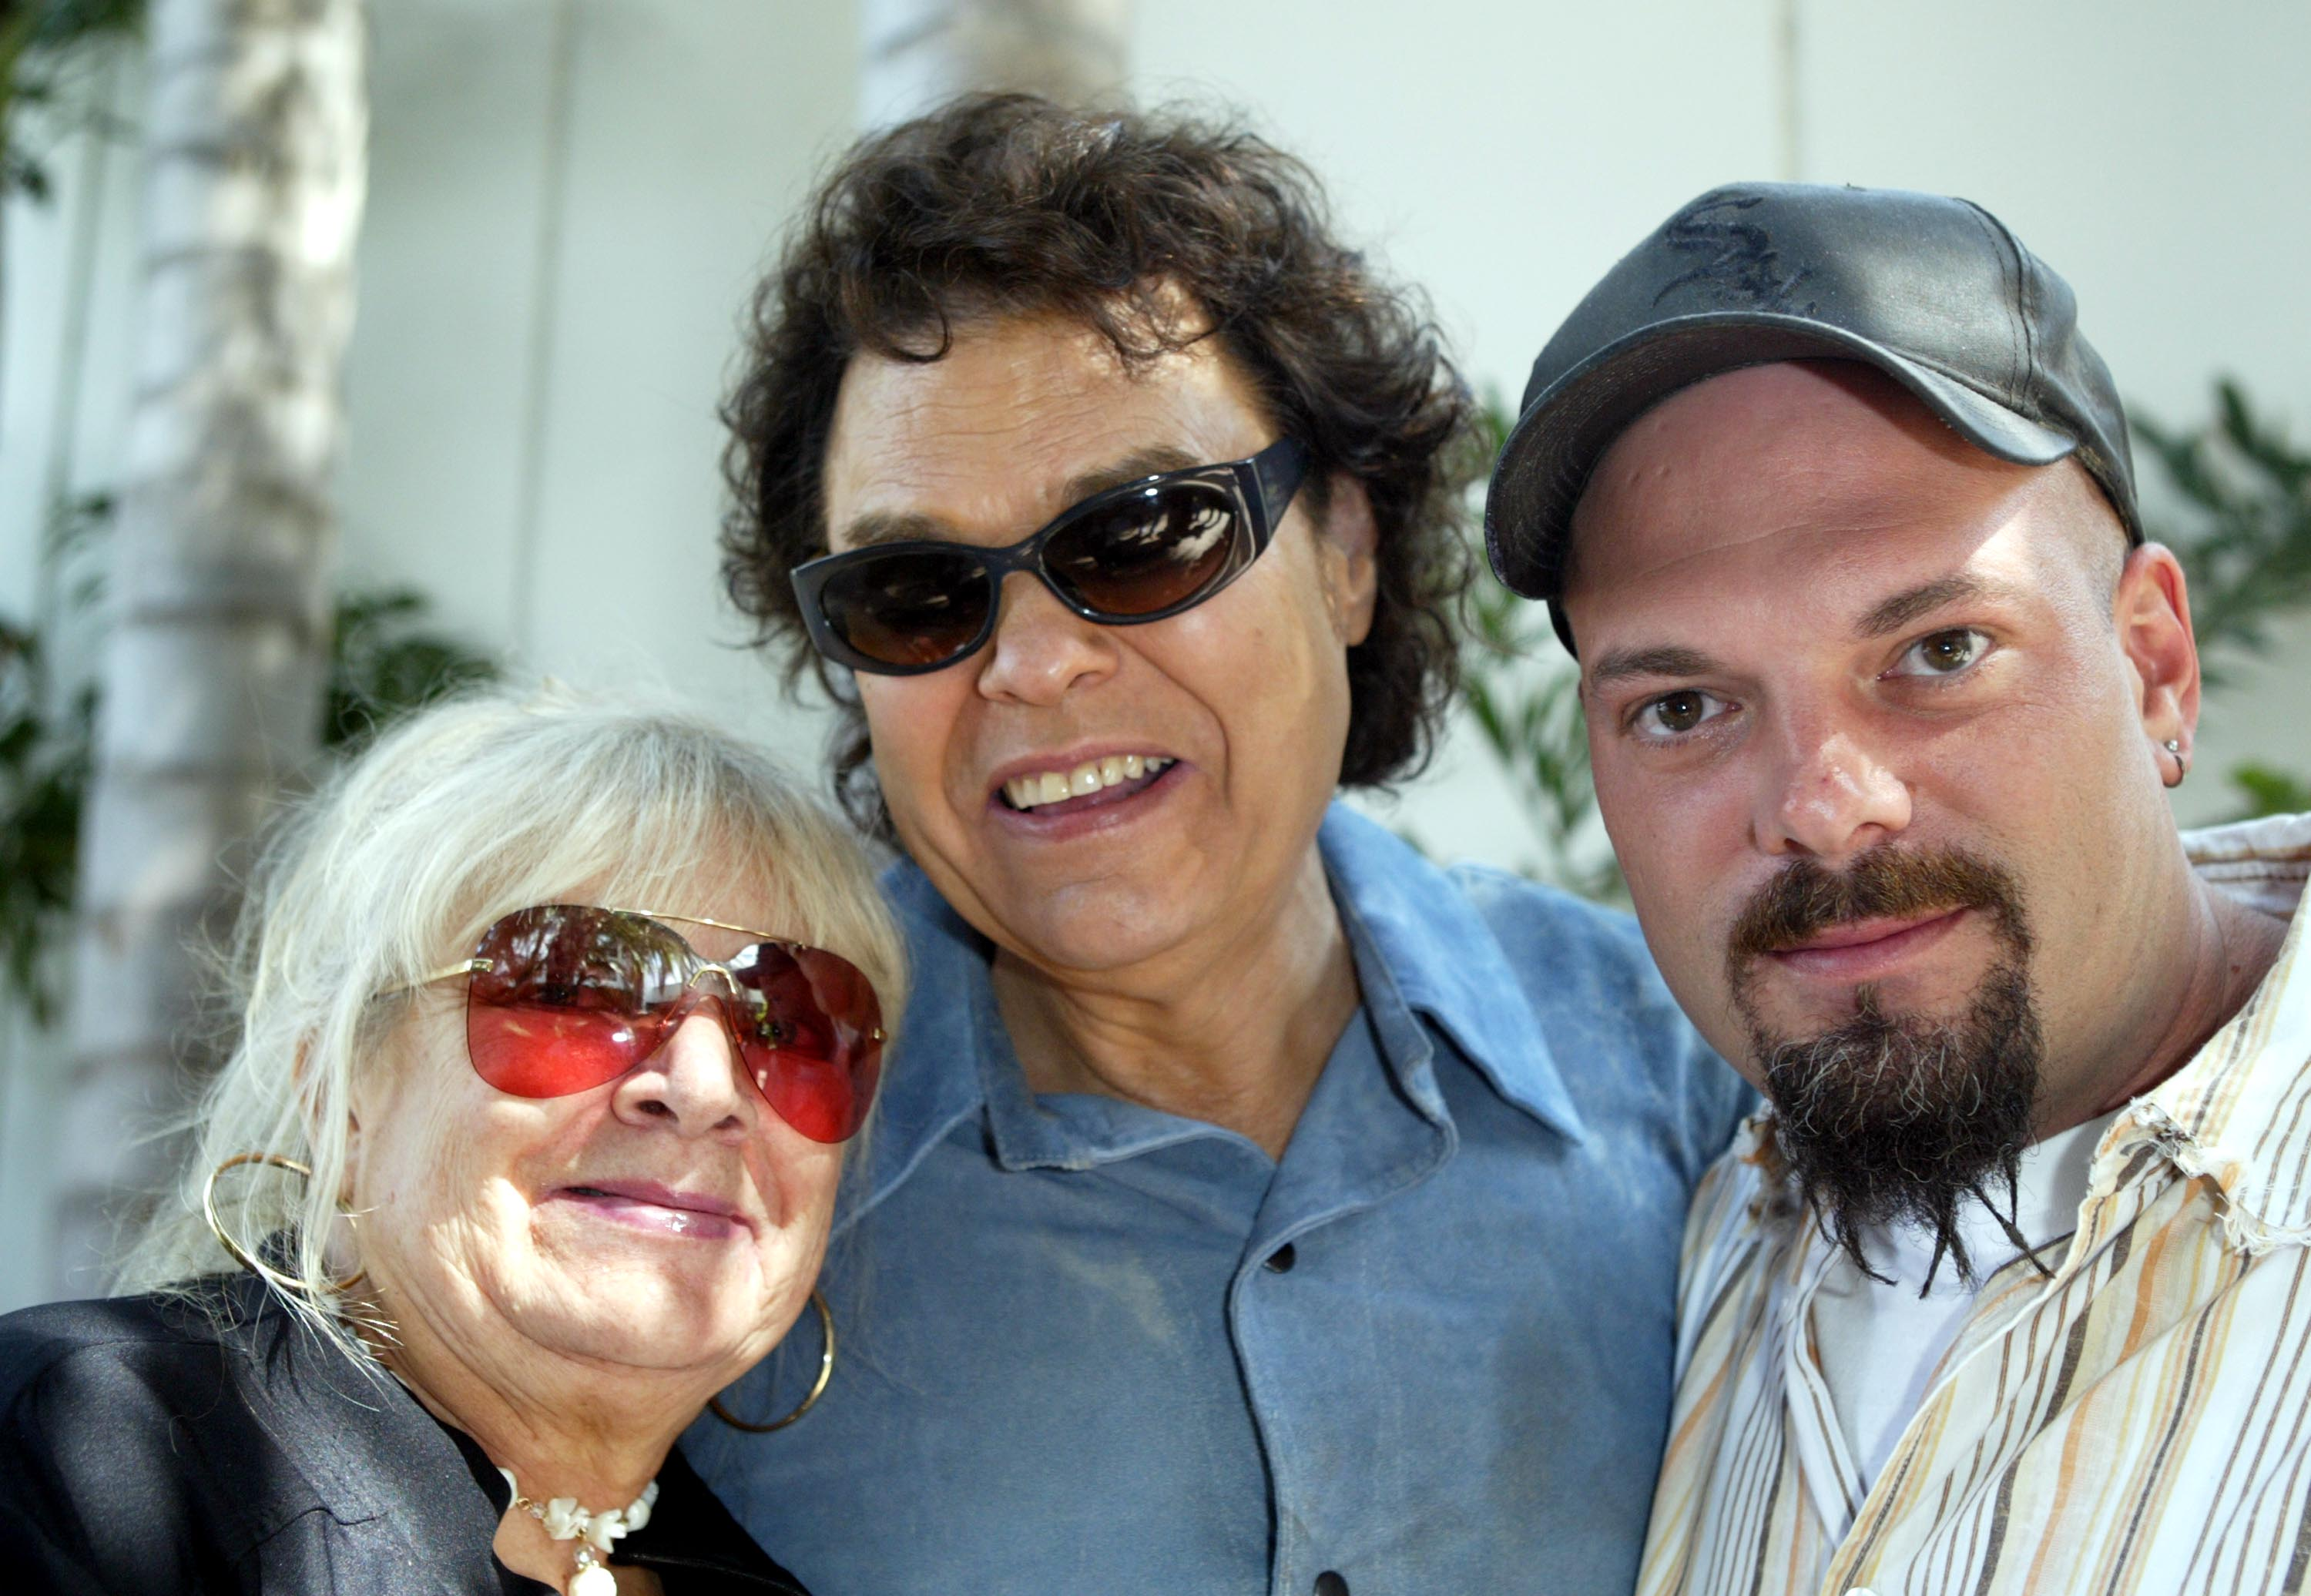 Ronnie Milsap with his wife, Joyce, and son, Todd, at the rehearsals for the Ray Charles tribute evenin | Photo: Getty Images